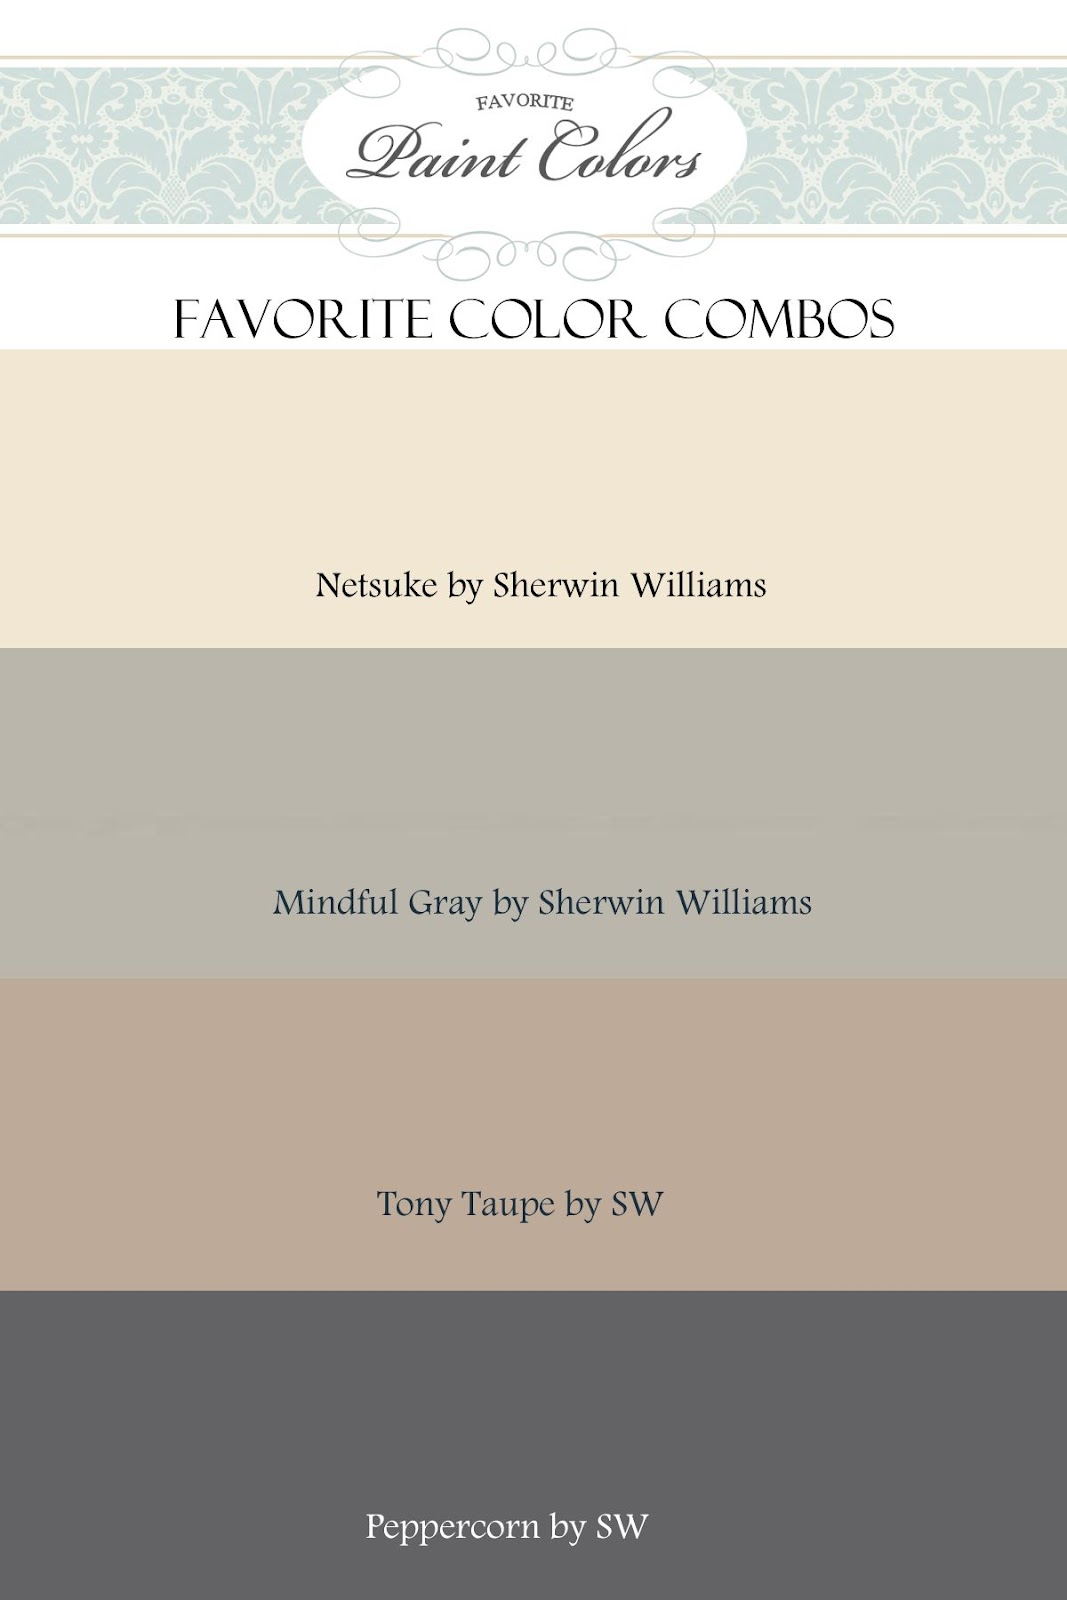 houses with sherwin williams tony taupe paint color